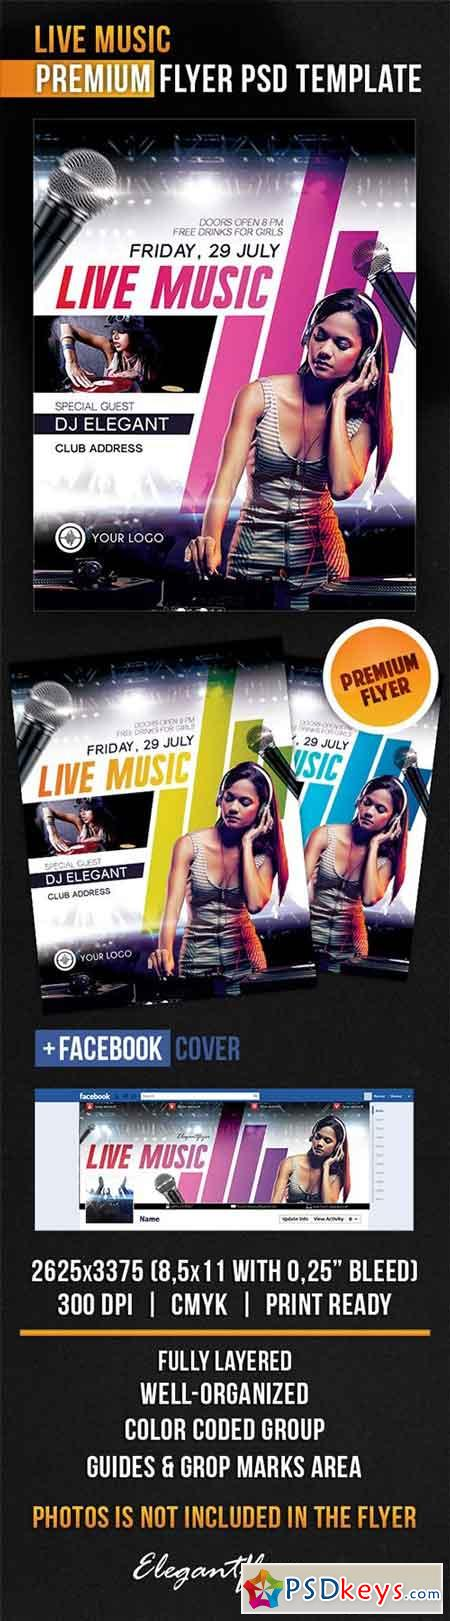 Live Music Flyer PSD Template + Facebook Cover